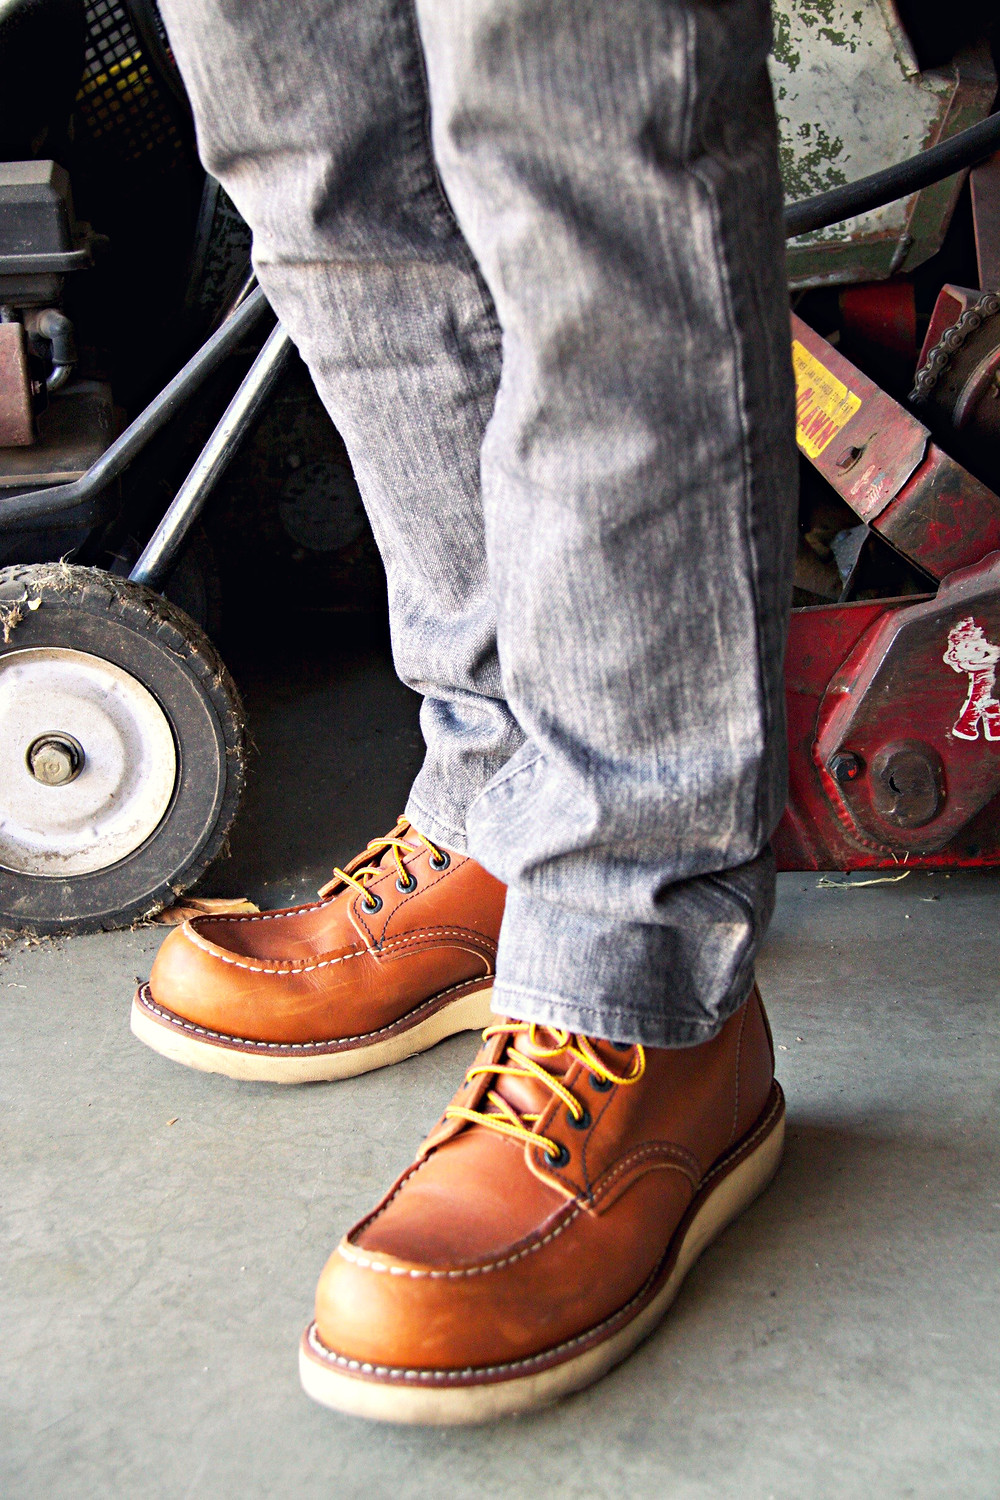 red wing shoes, 10875 6-inch boot, $250